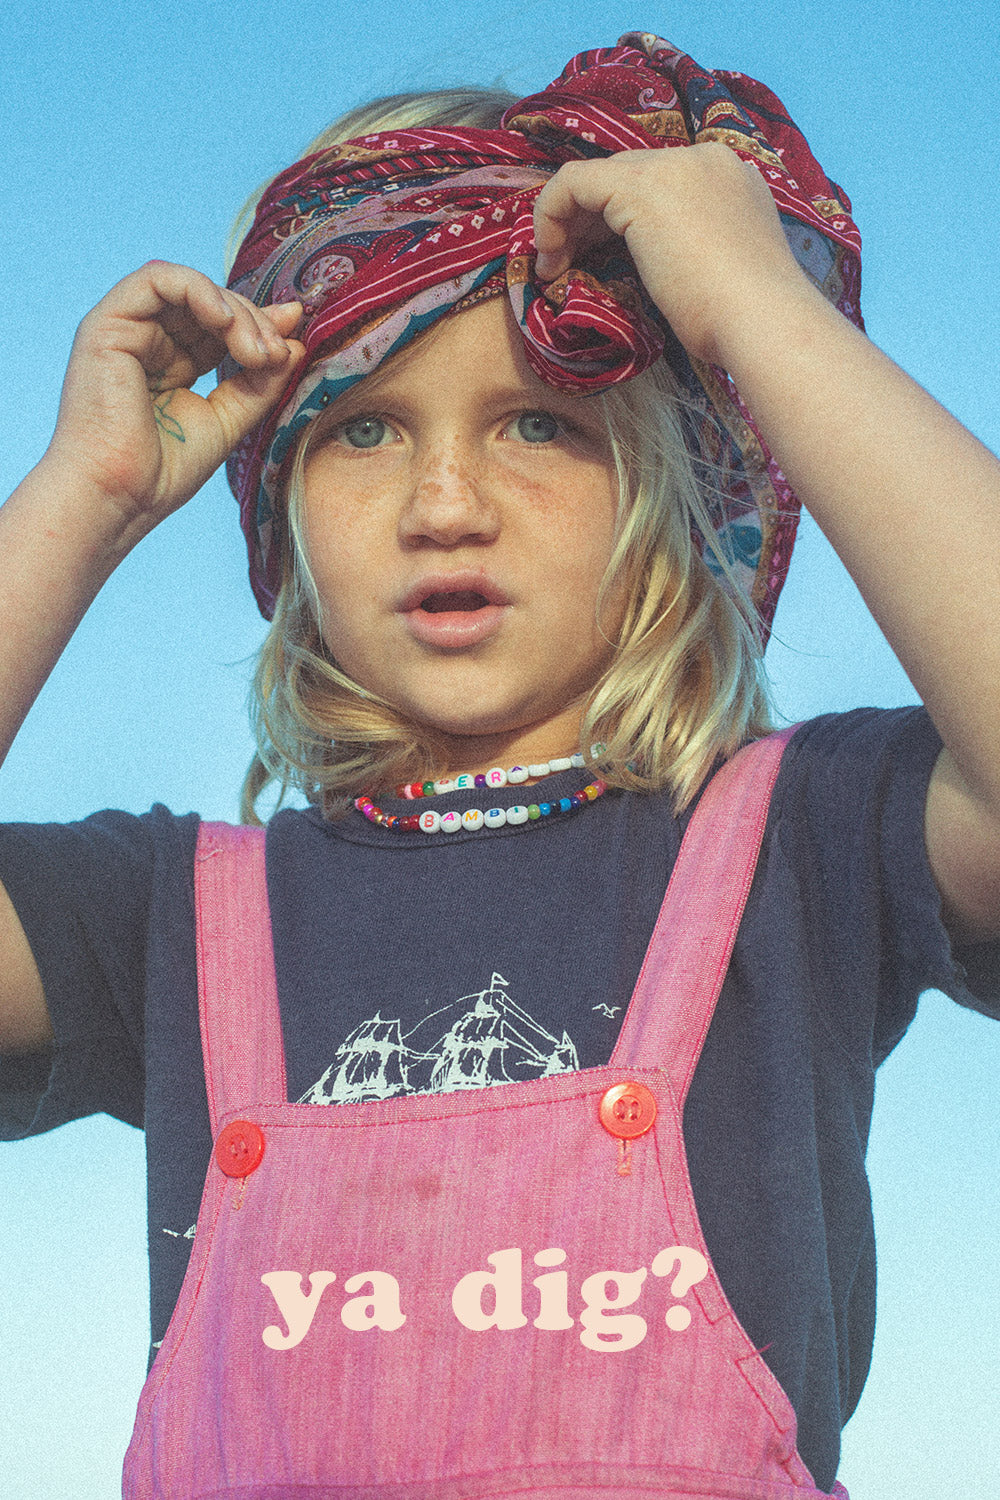 kids sustainable fashion, recycled vintage clothing, joey revival project, joey rainbow